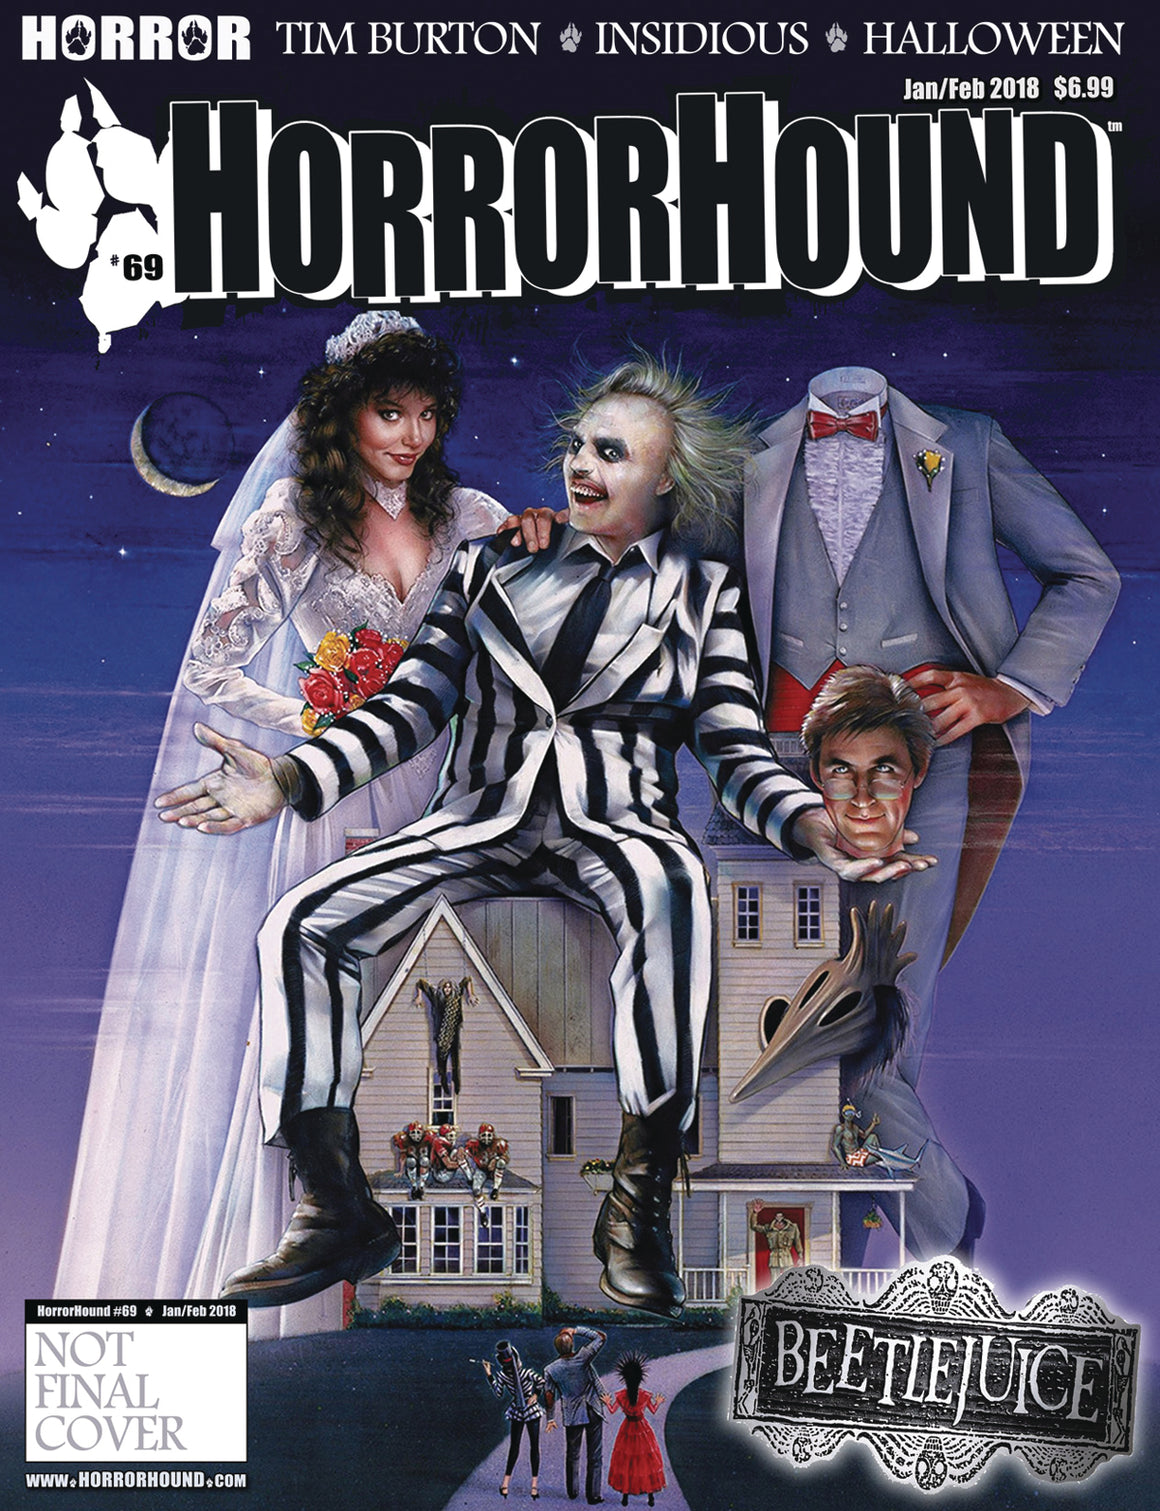 HORRORHOUND #69